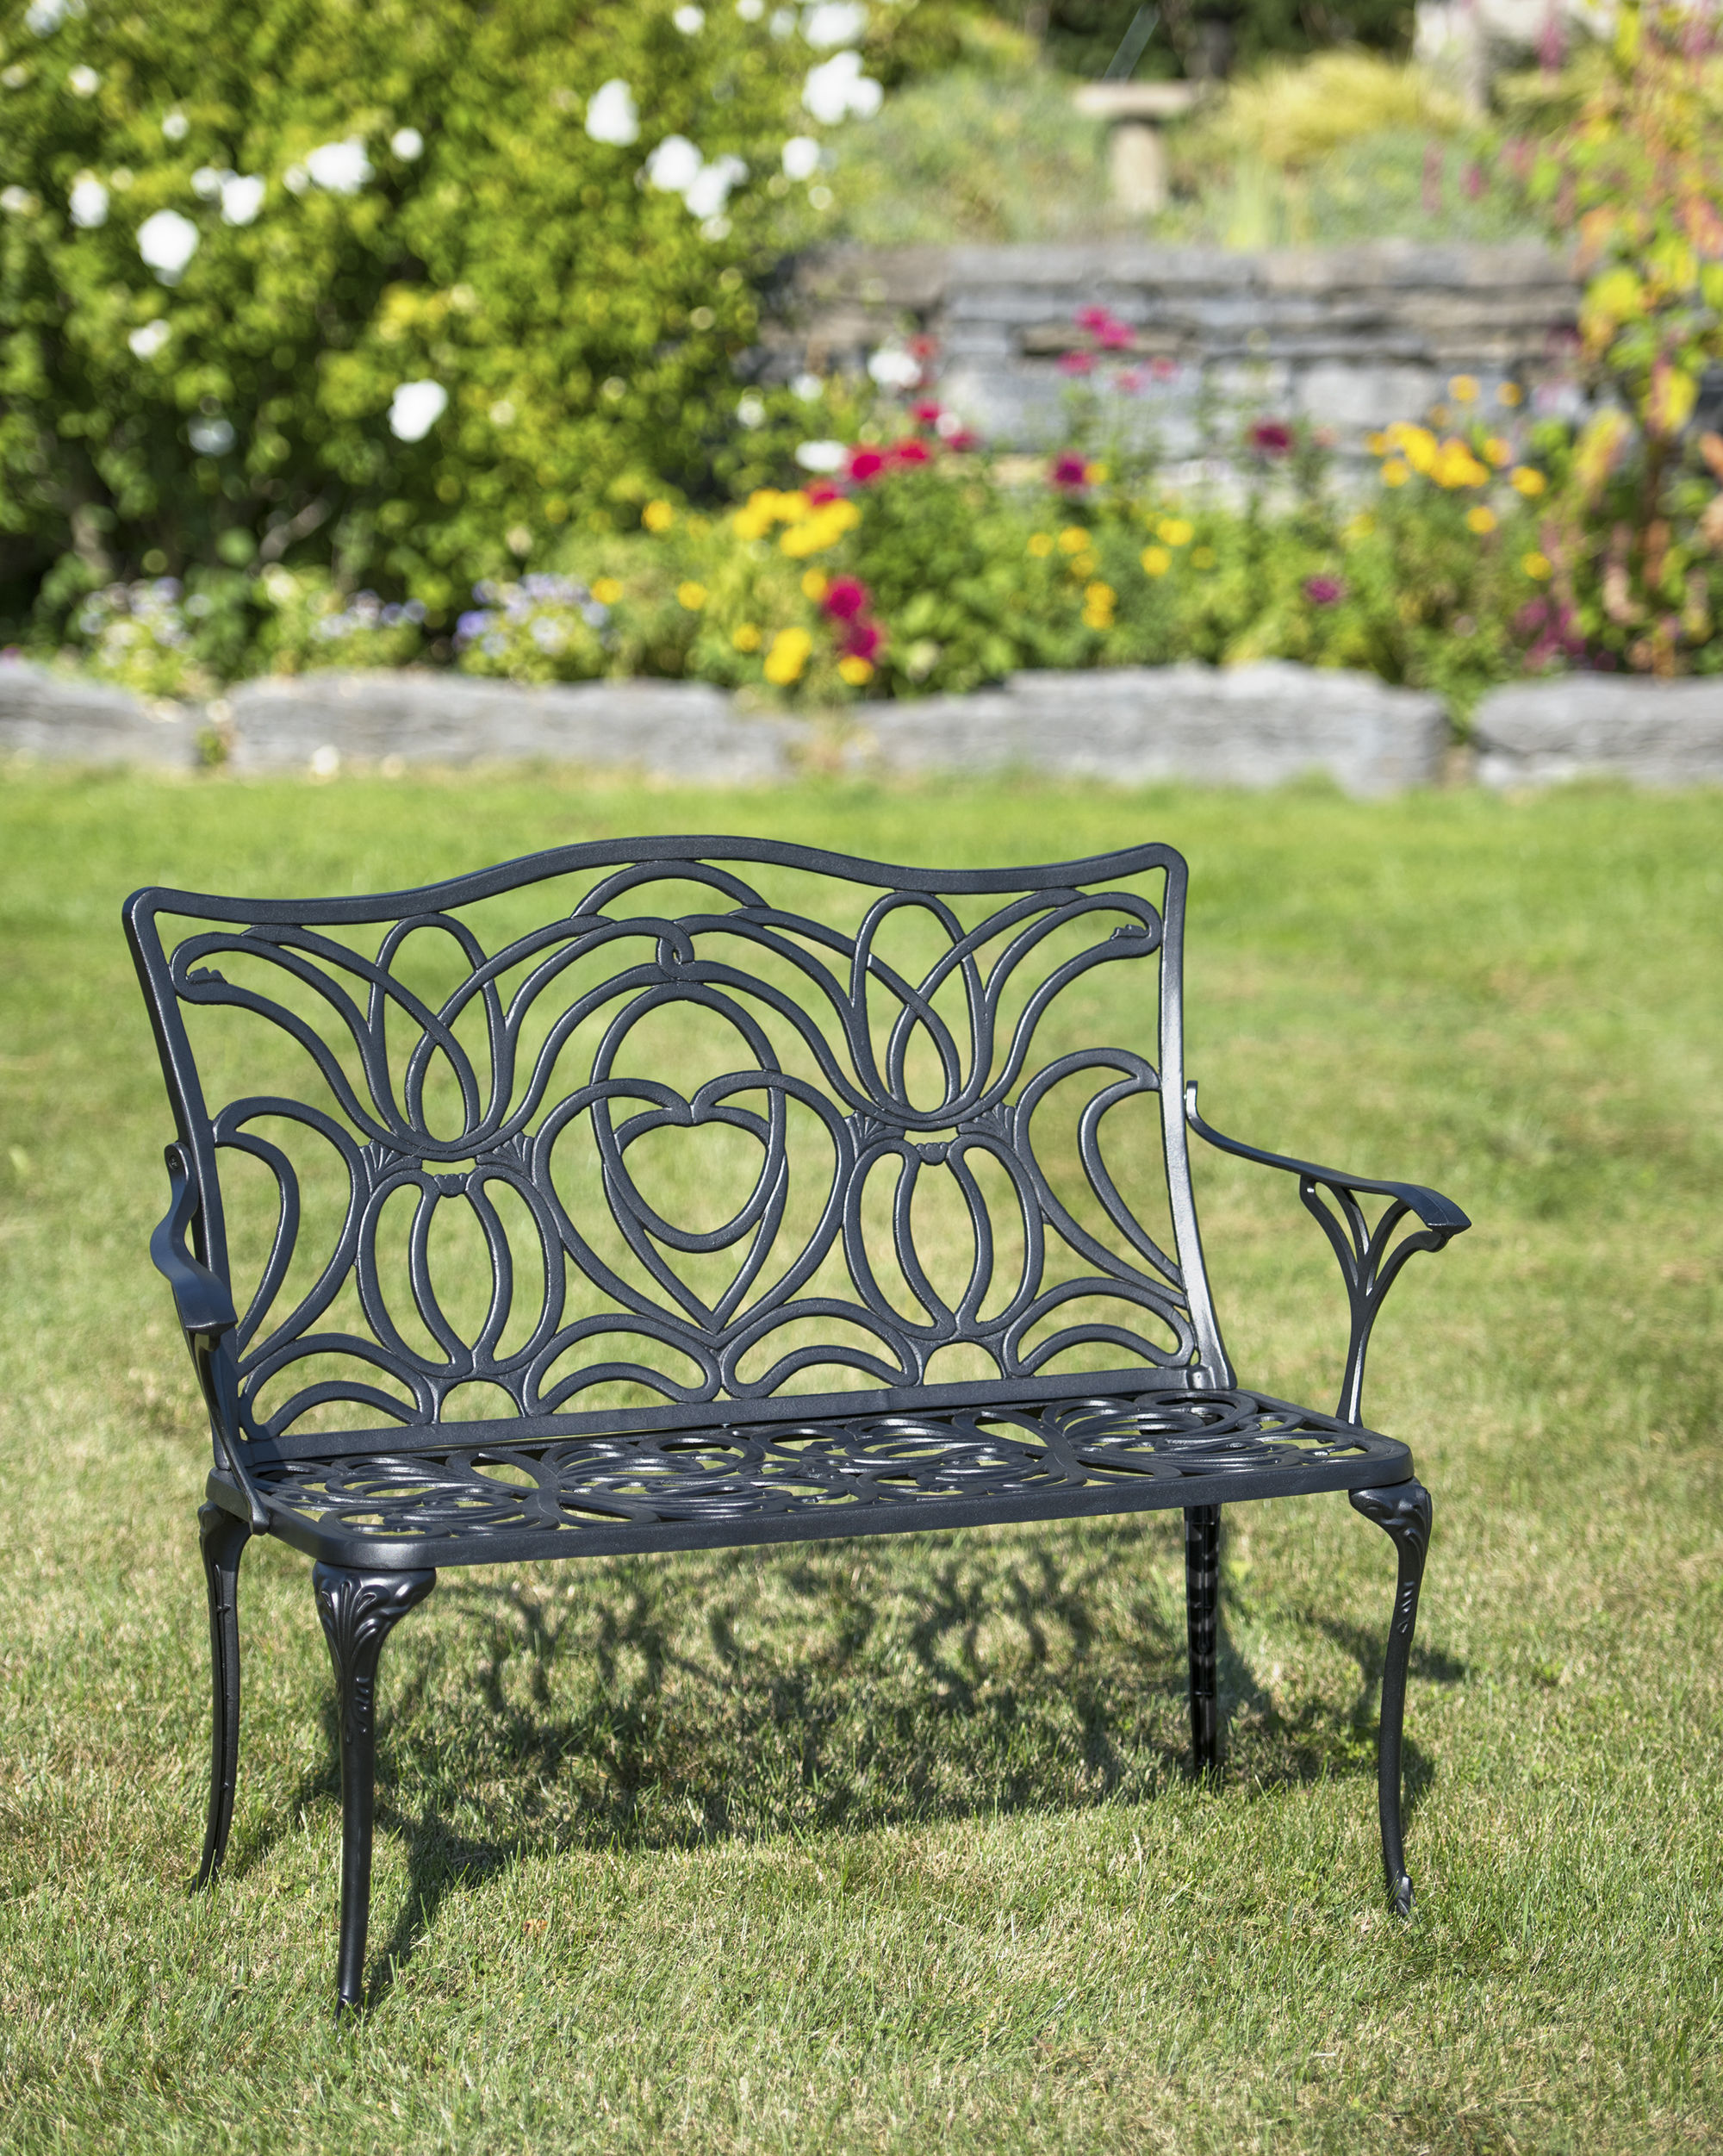 popular tulip bench aluminum garden bench black metal outdoor